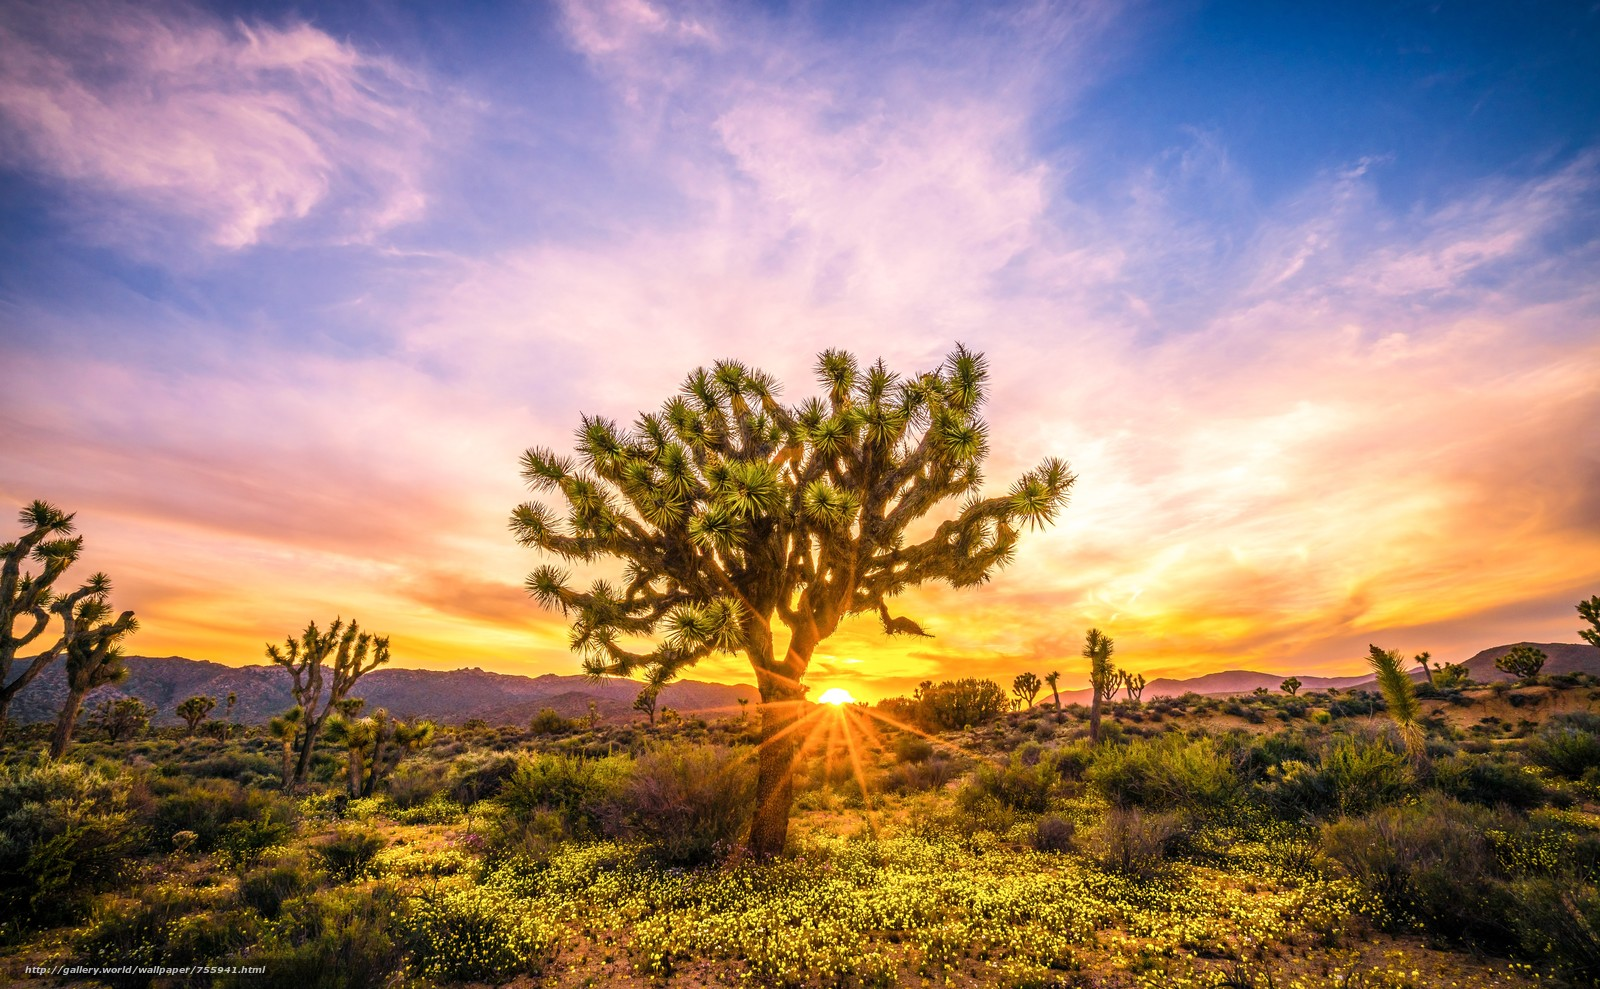 national park, Joshua Tree, desert, trees, sunset, landscape